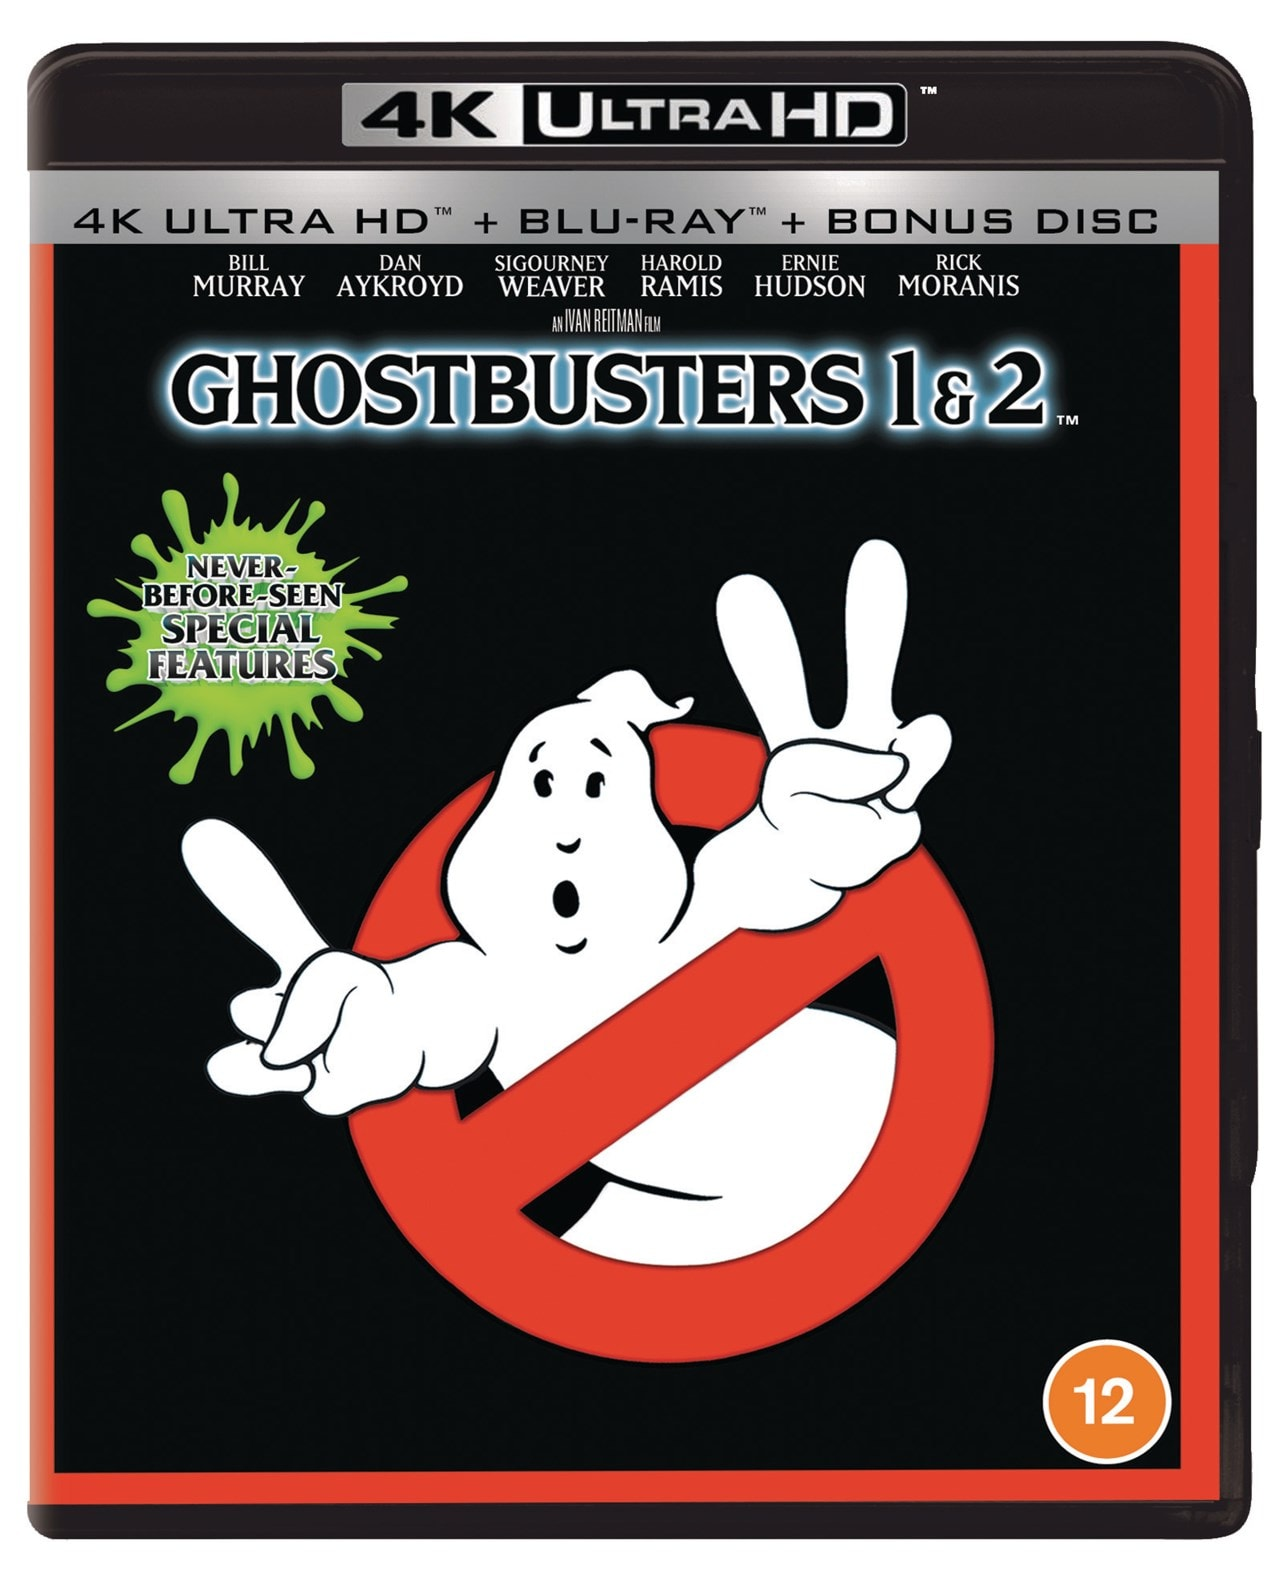 Ghostbusters/Ghostbusters 2 - 1